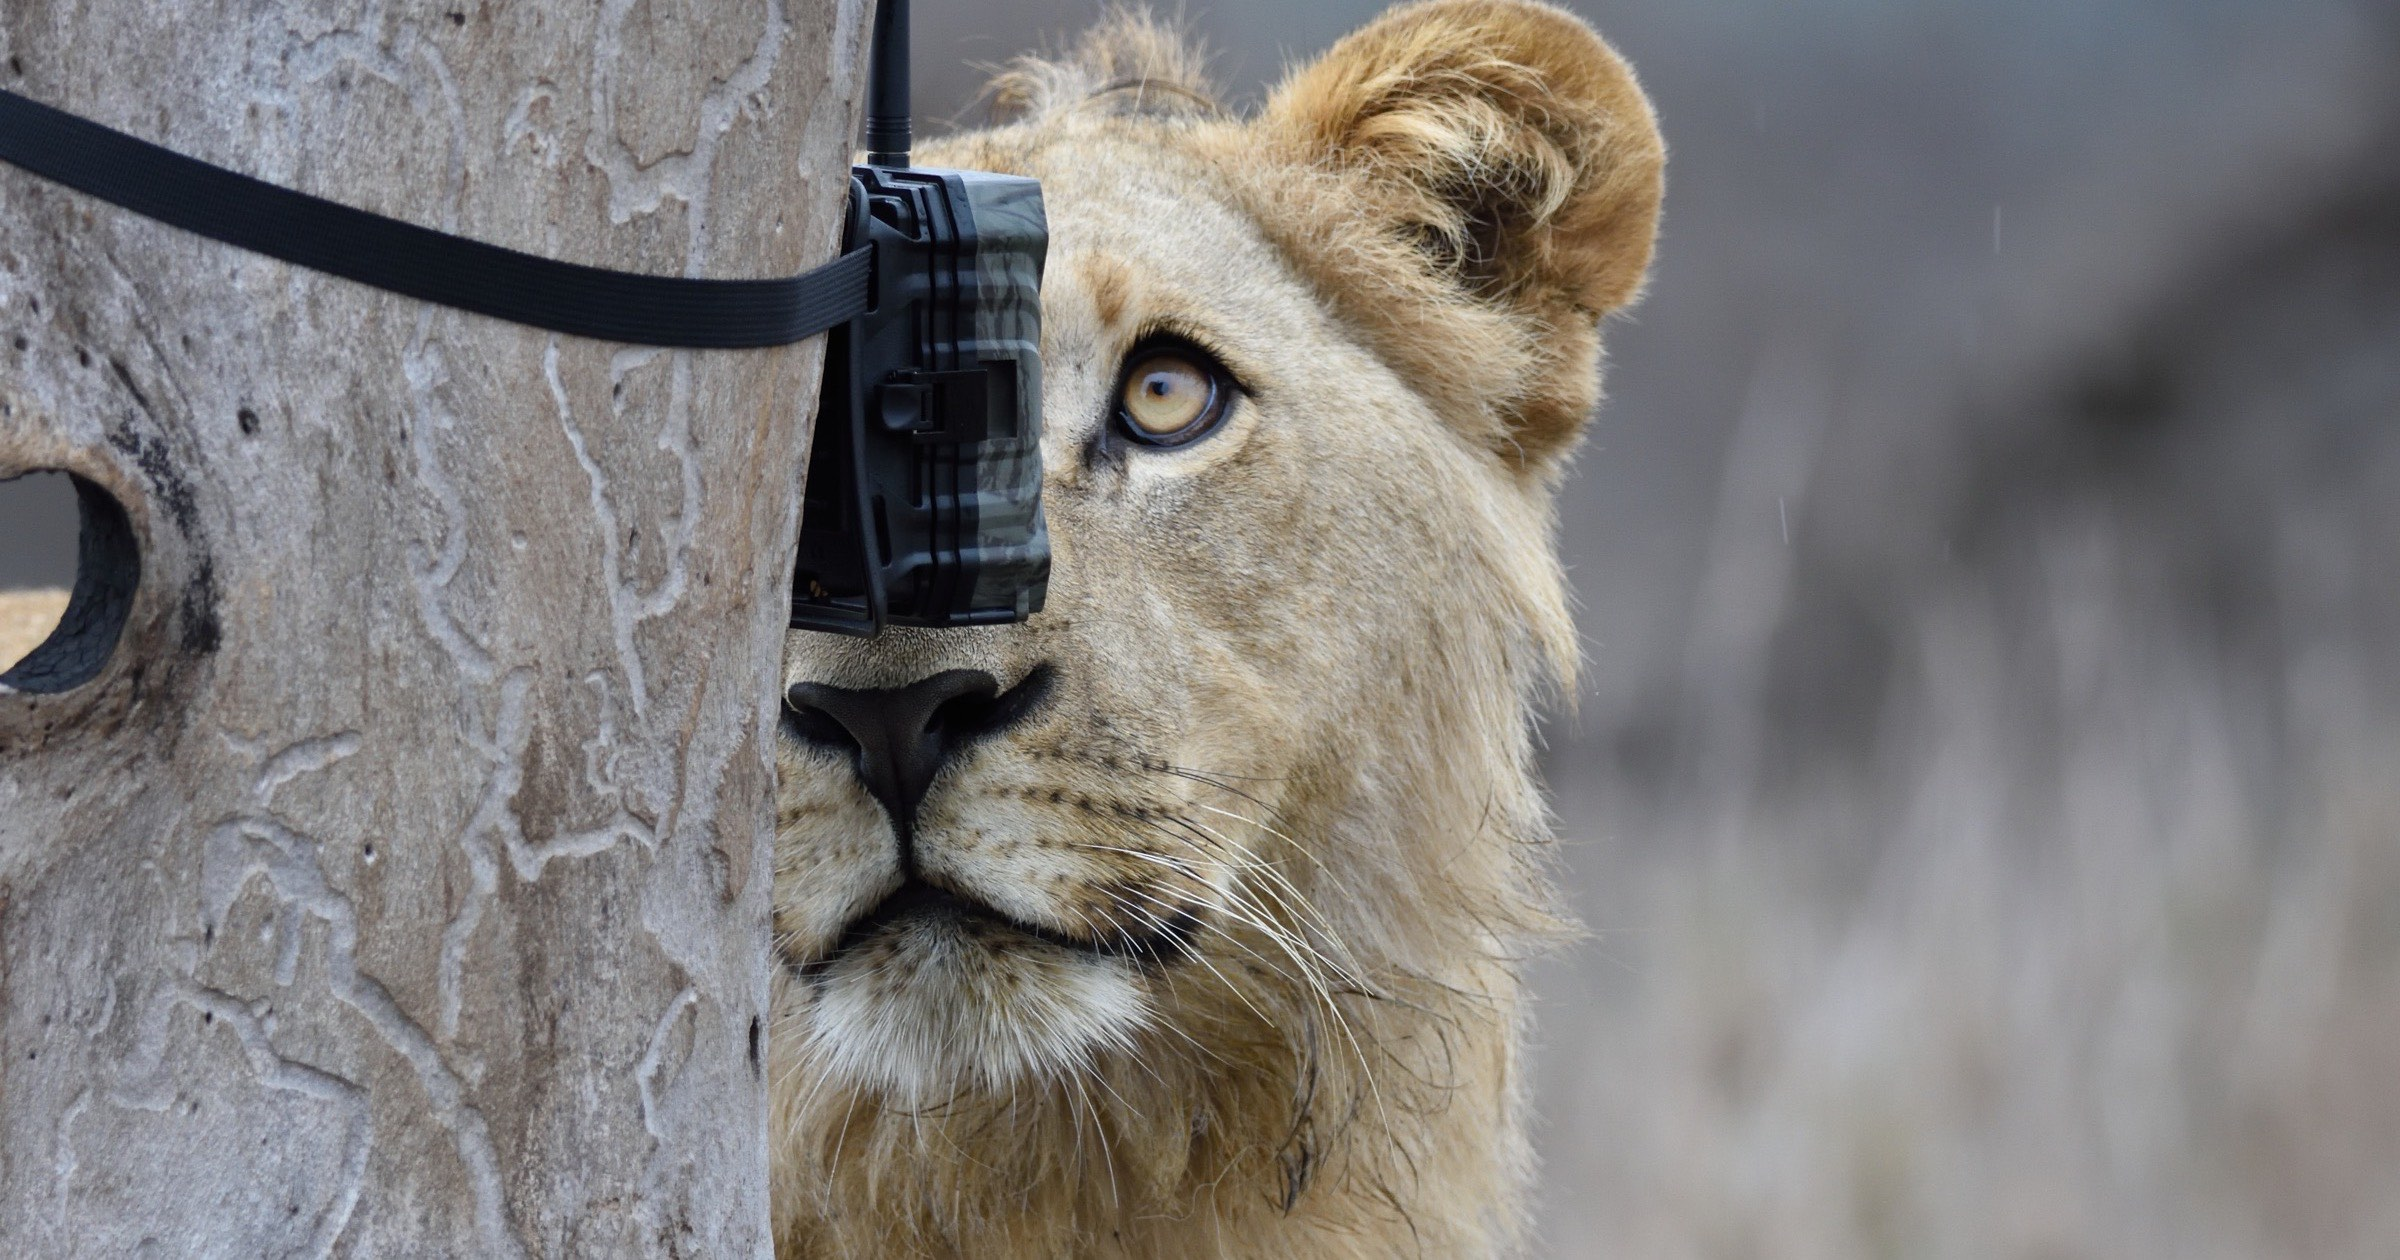 Lion and camera trap